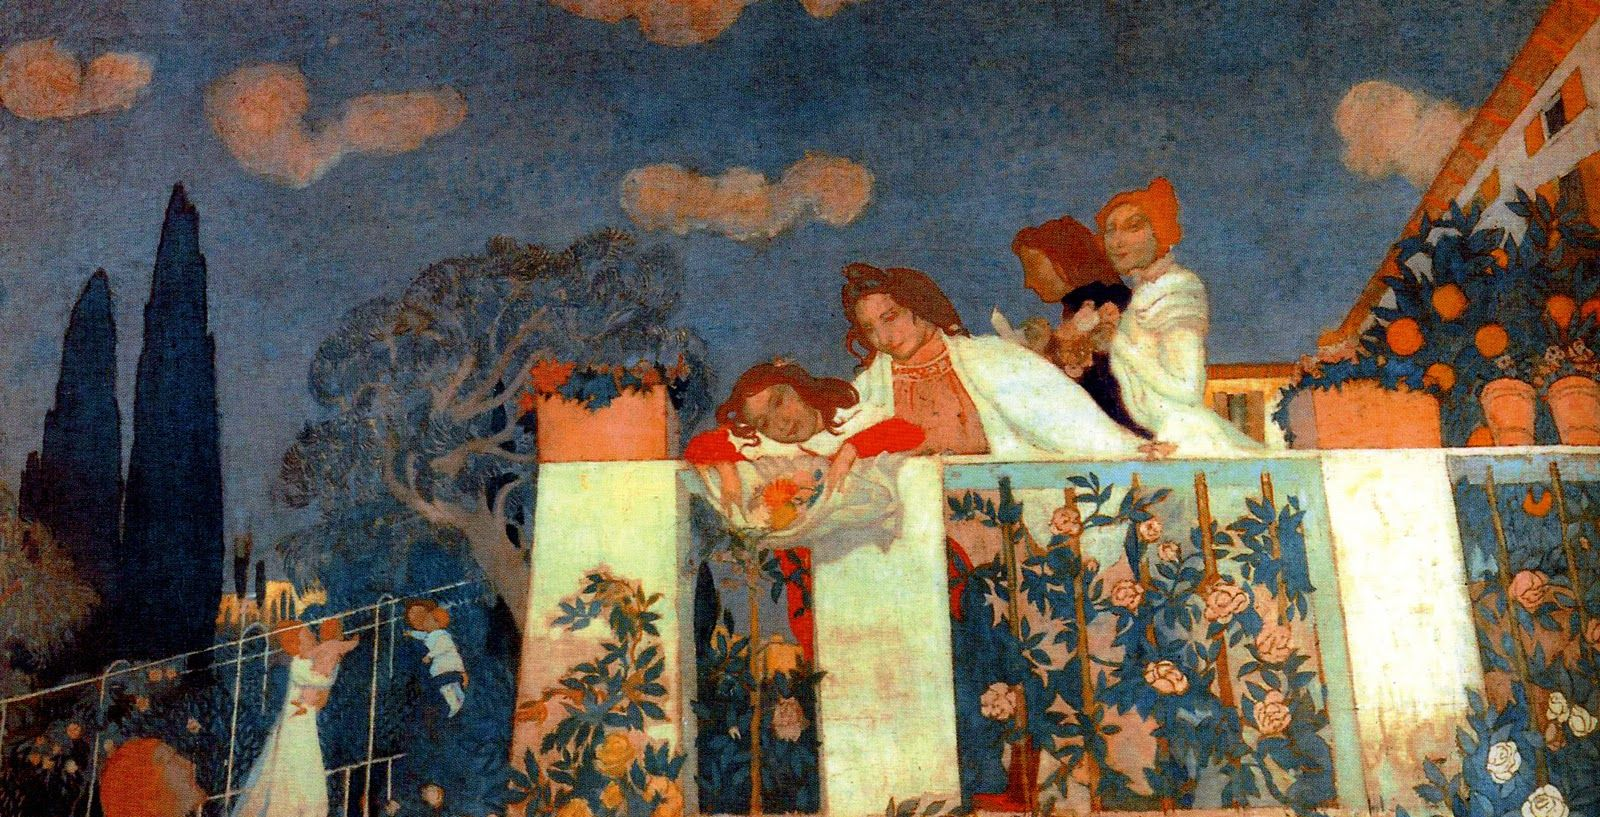 The Athenaeum - The Denis And Chausson Families On The Terrace at Fiesole (Maurice Denis - )